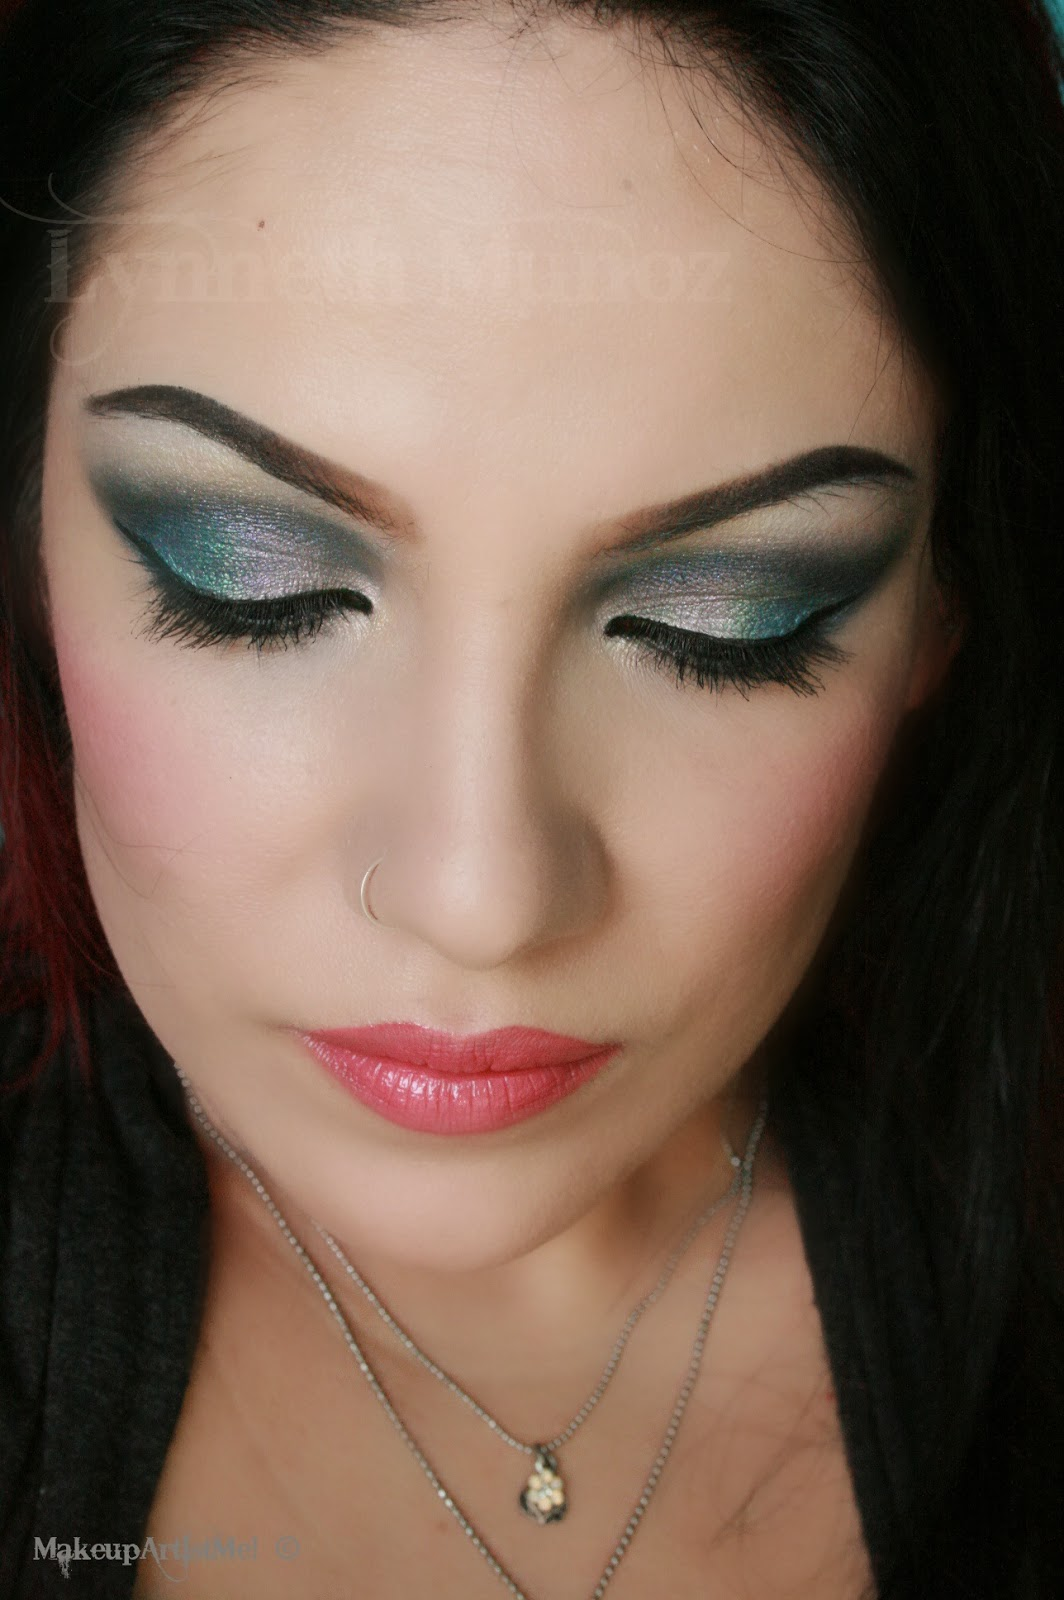 Make Up Tutorials Youtube: Make-up Artist Me!: Silver Lining- Makeup Tutorial